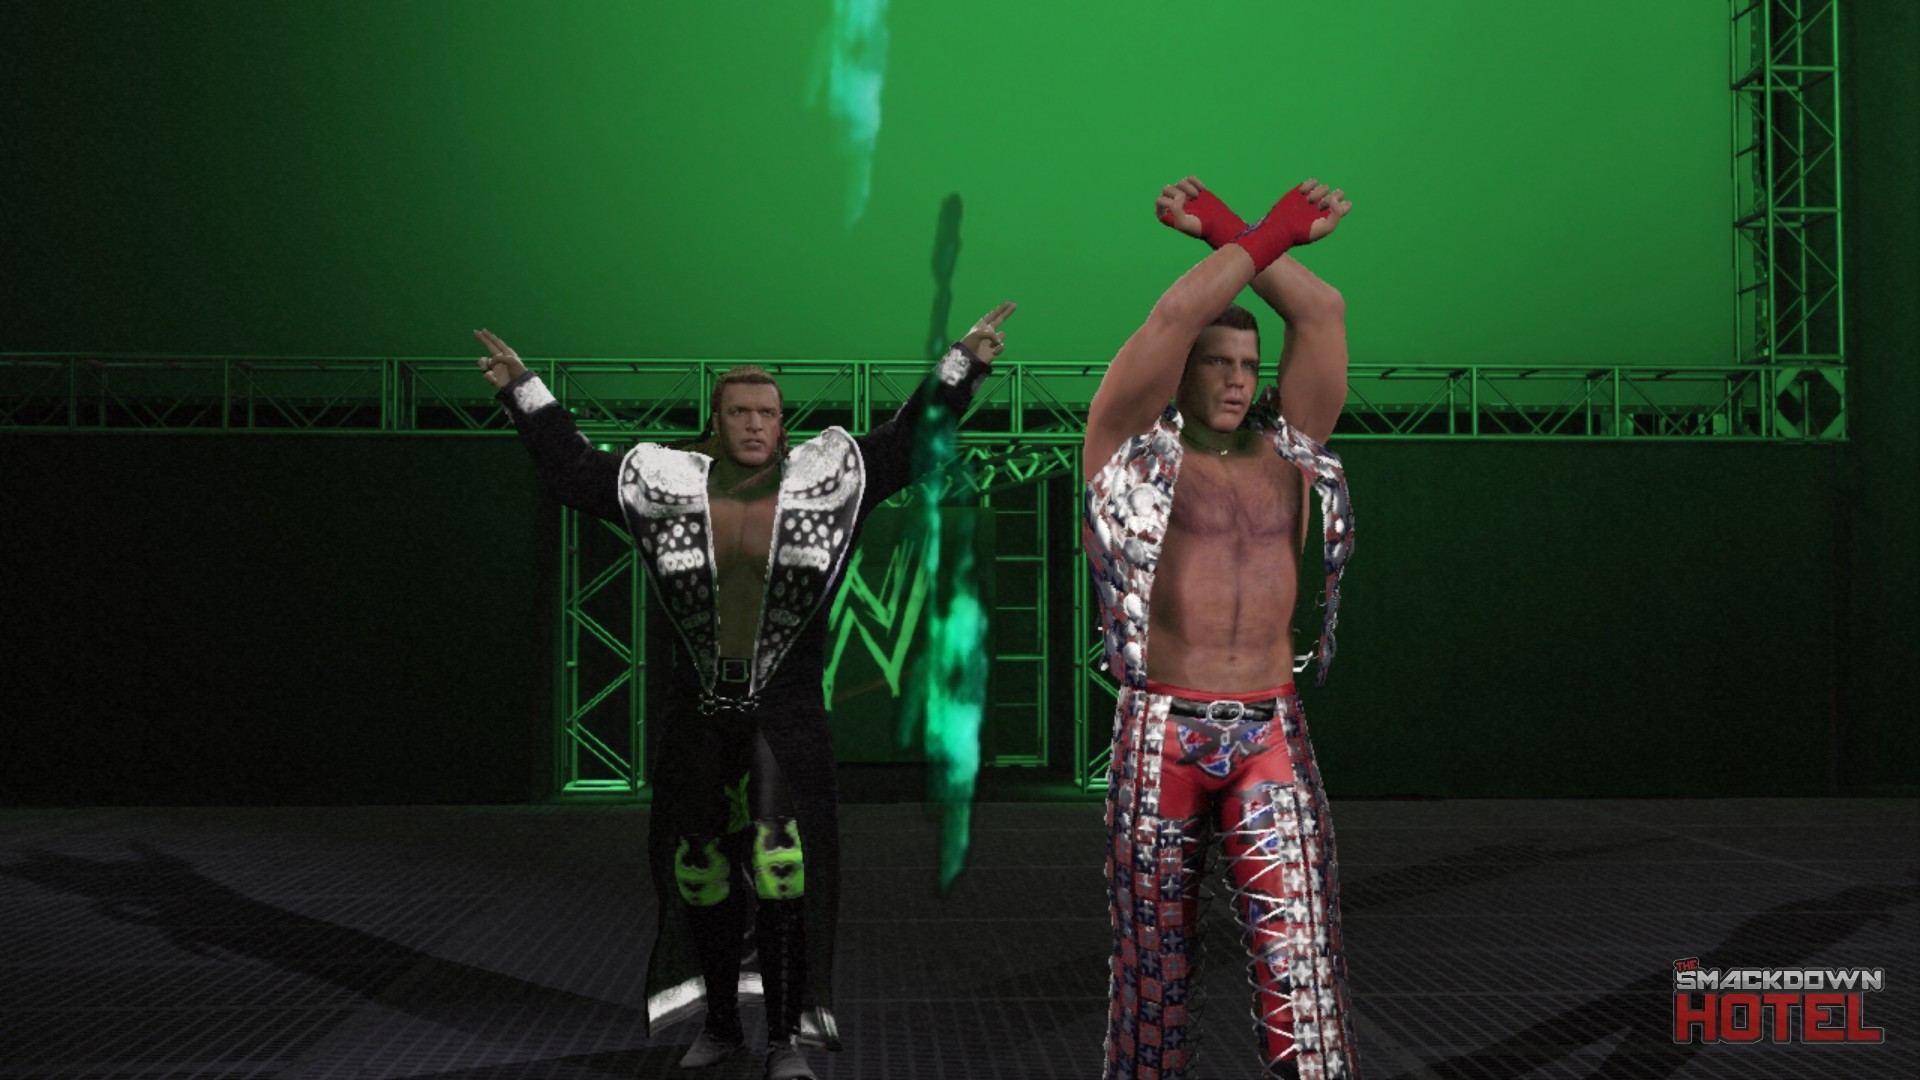 Wwe Dx Hd Wallpaper Wwe Wallpapers Dx 64 Images